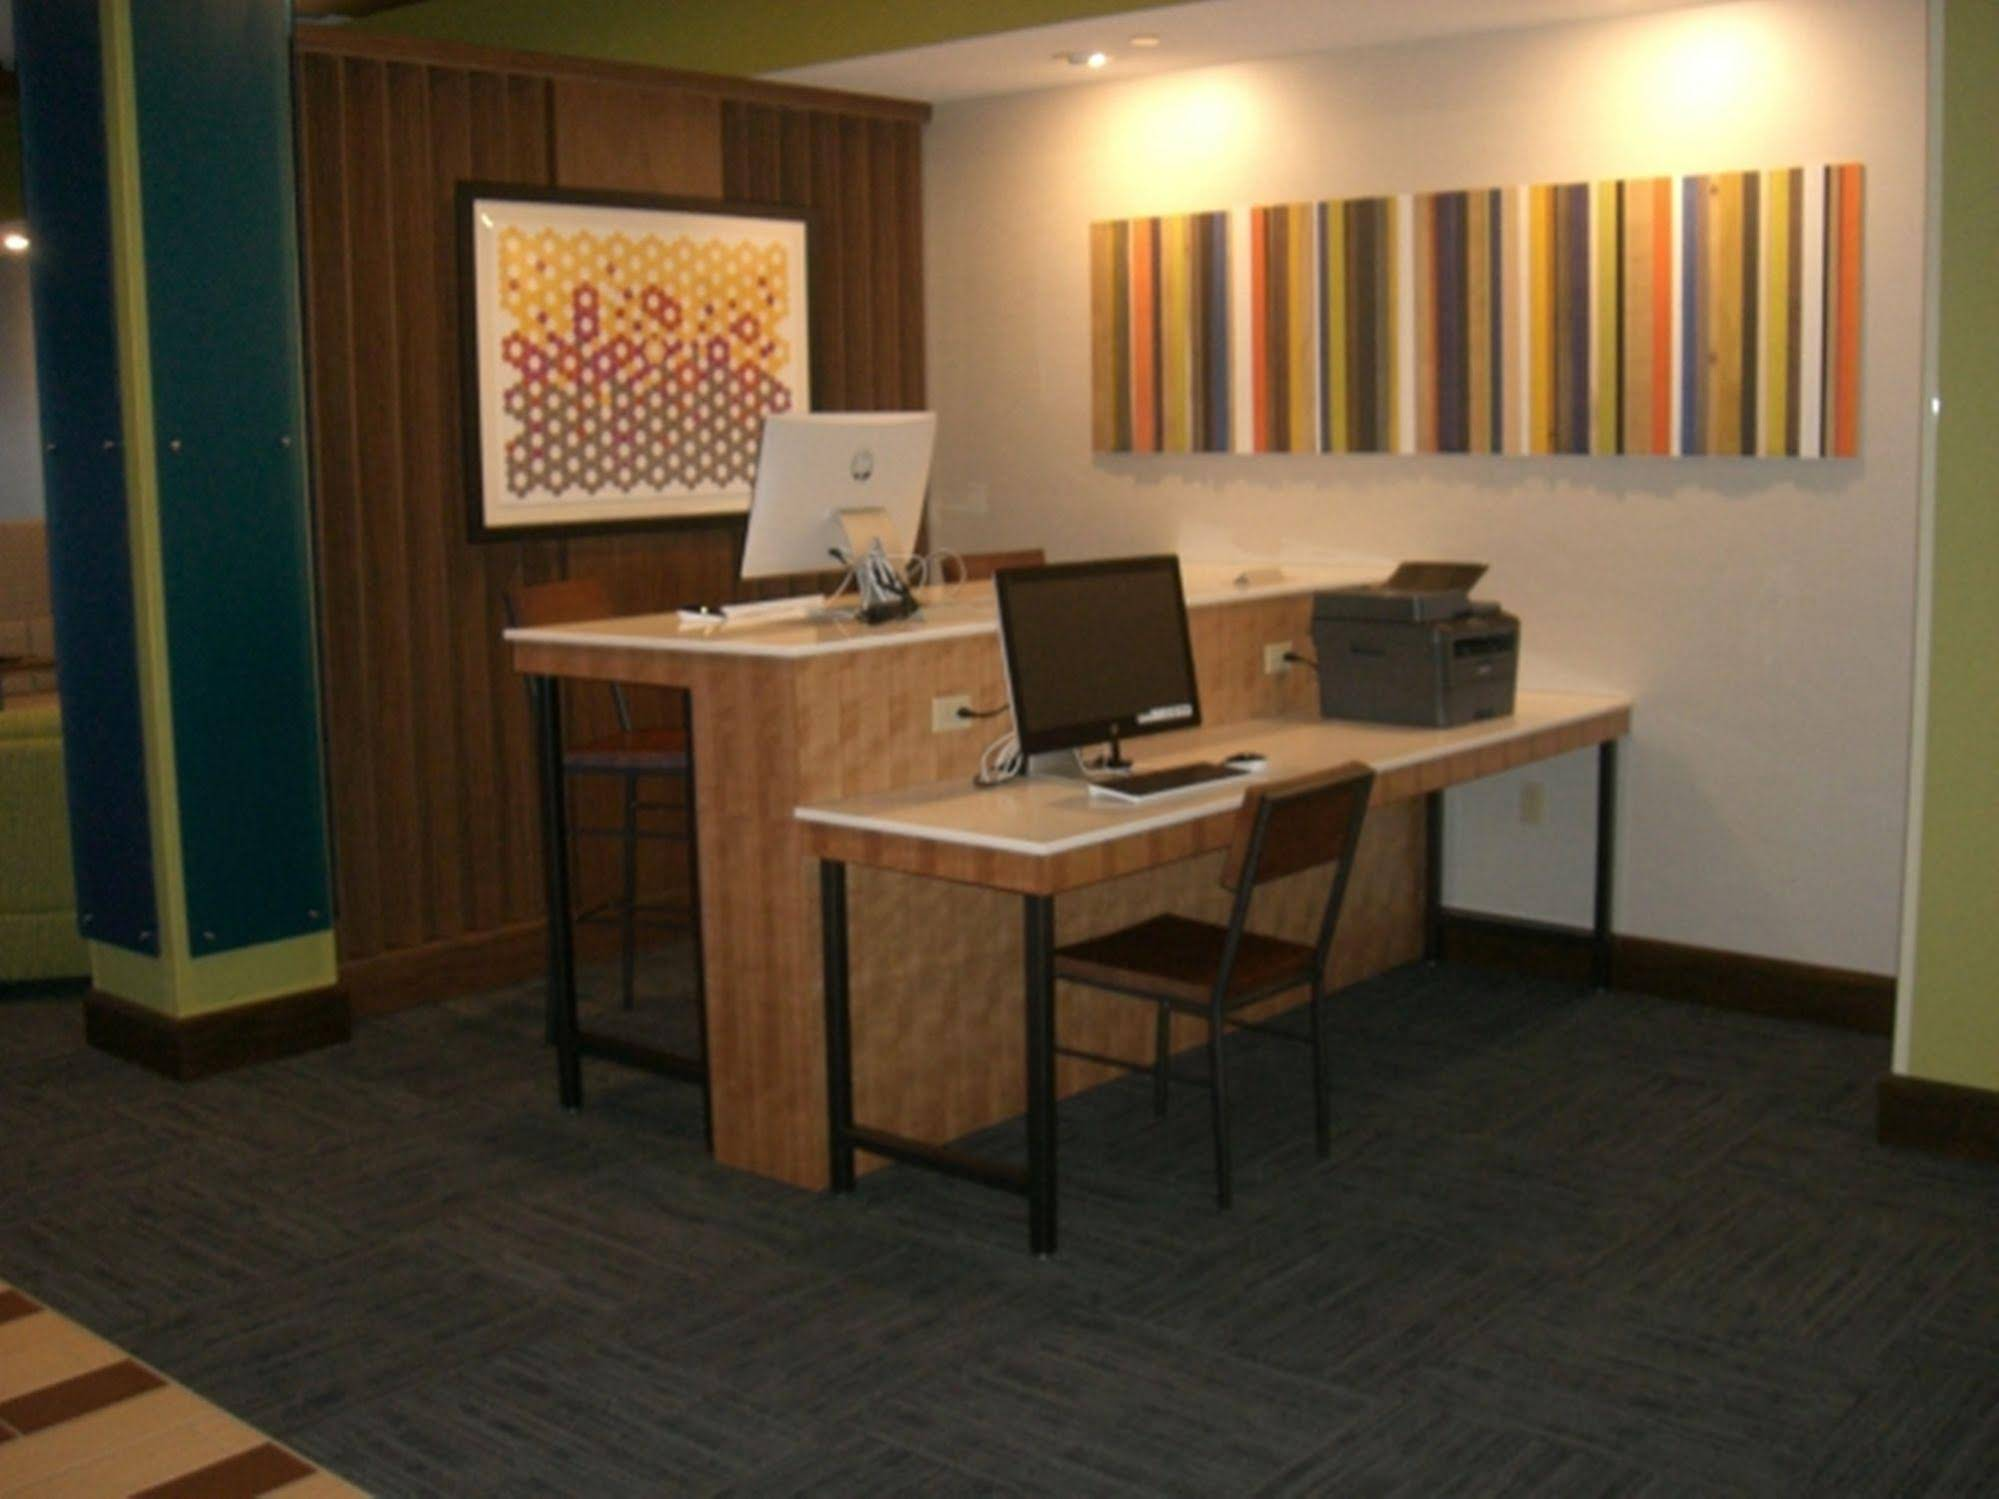 Holiday Inn Express and Suites Uniontown